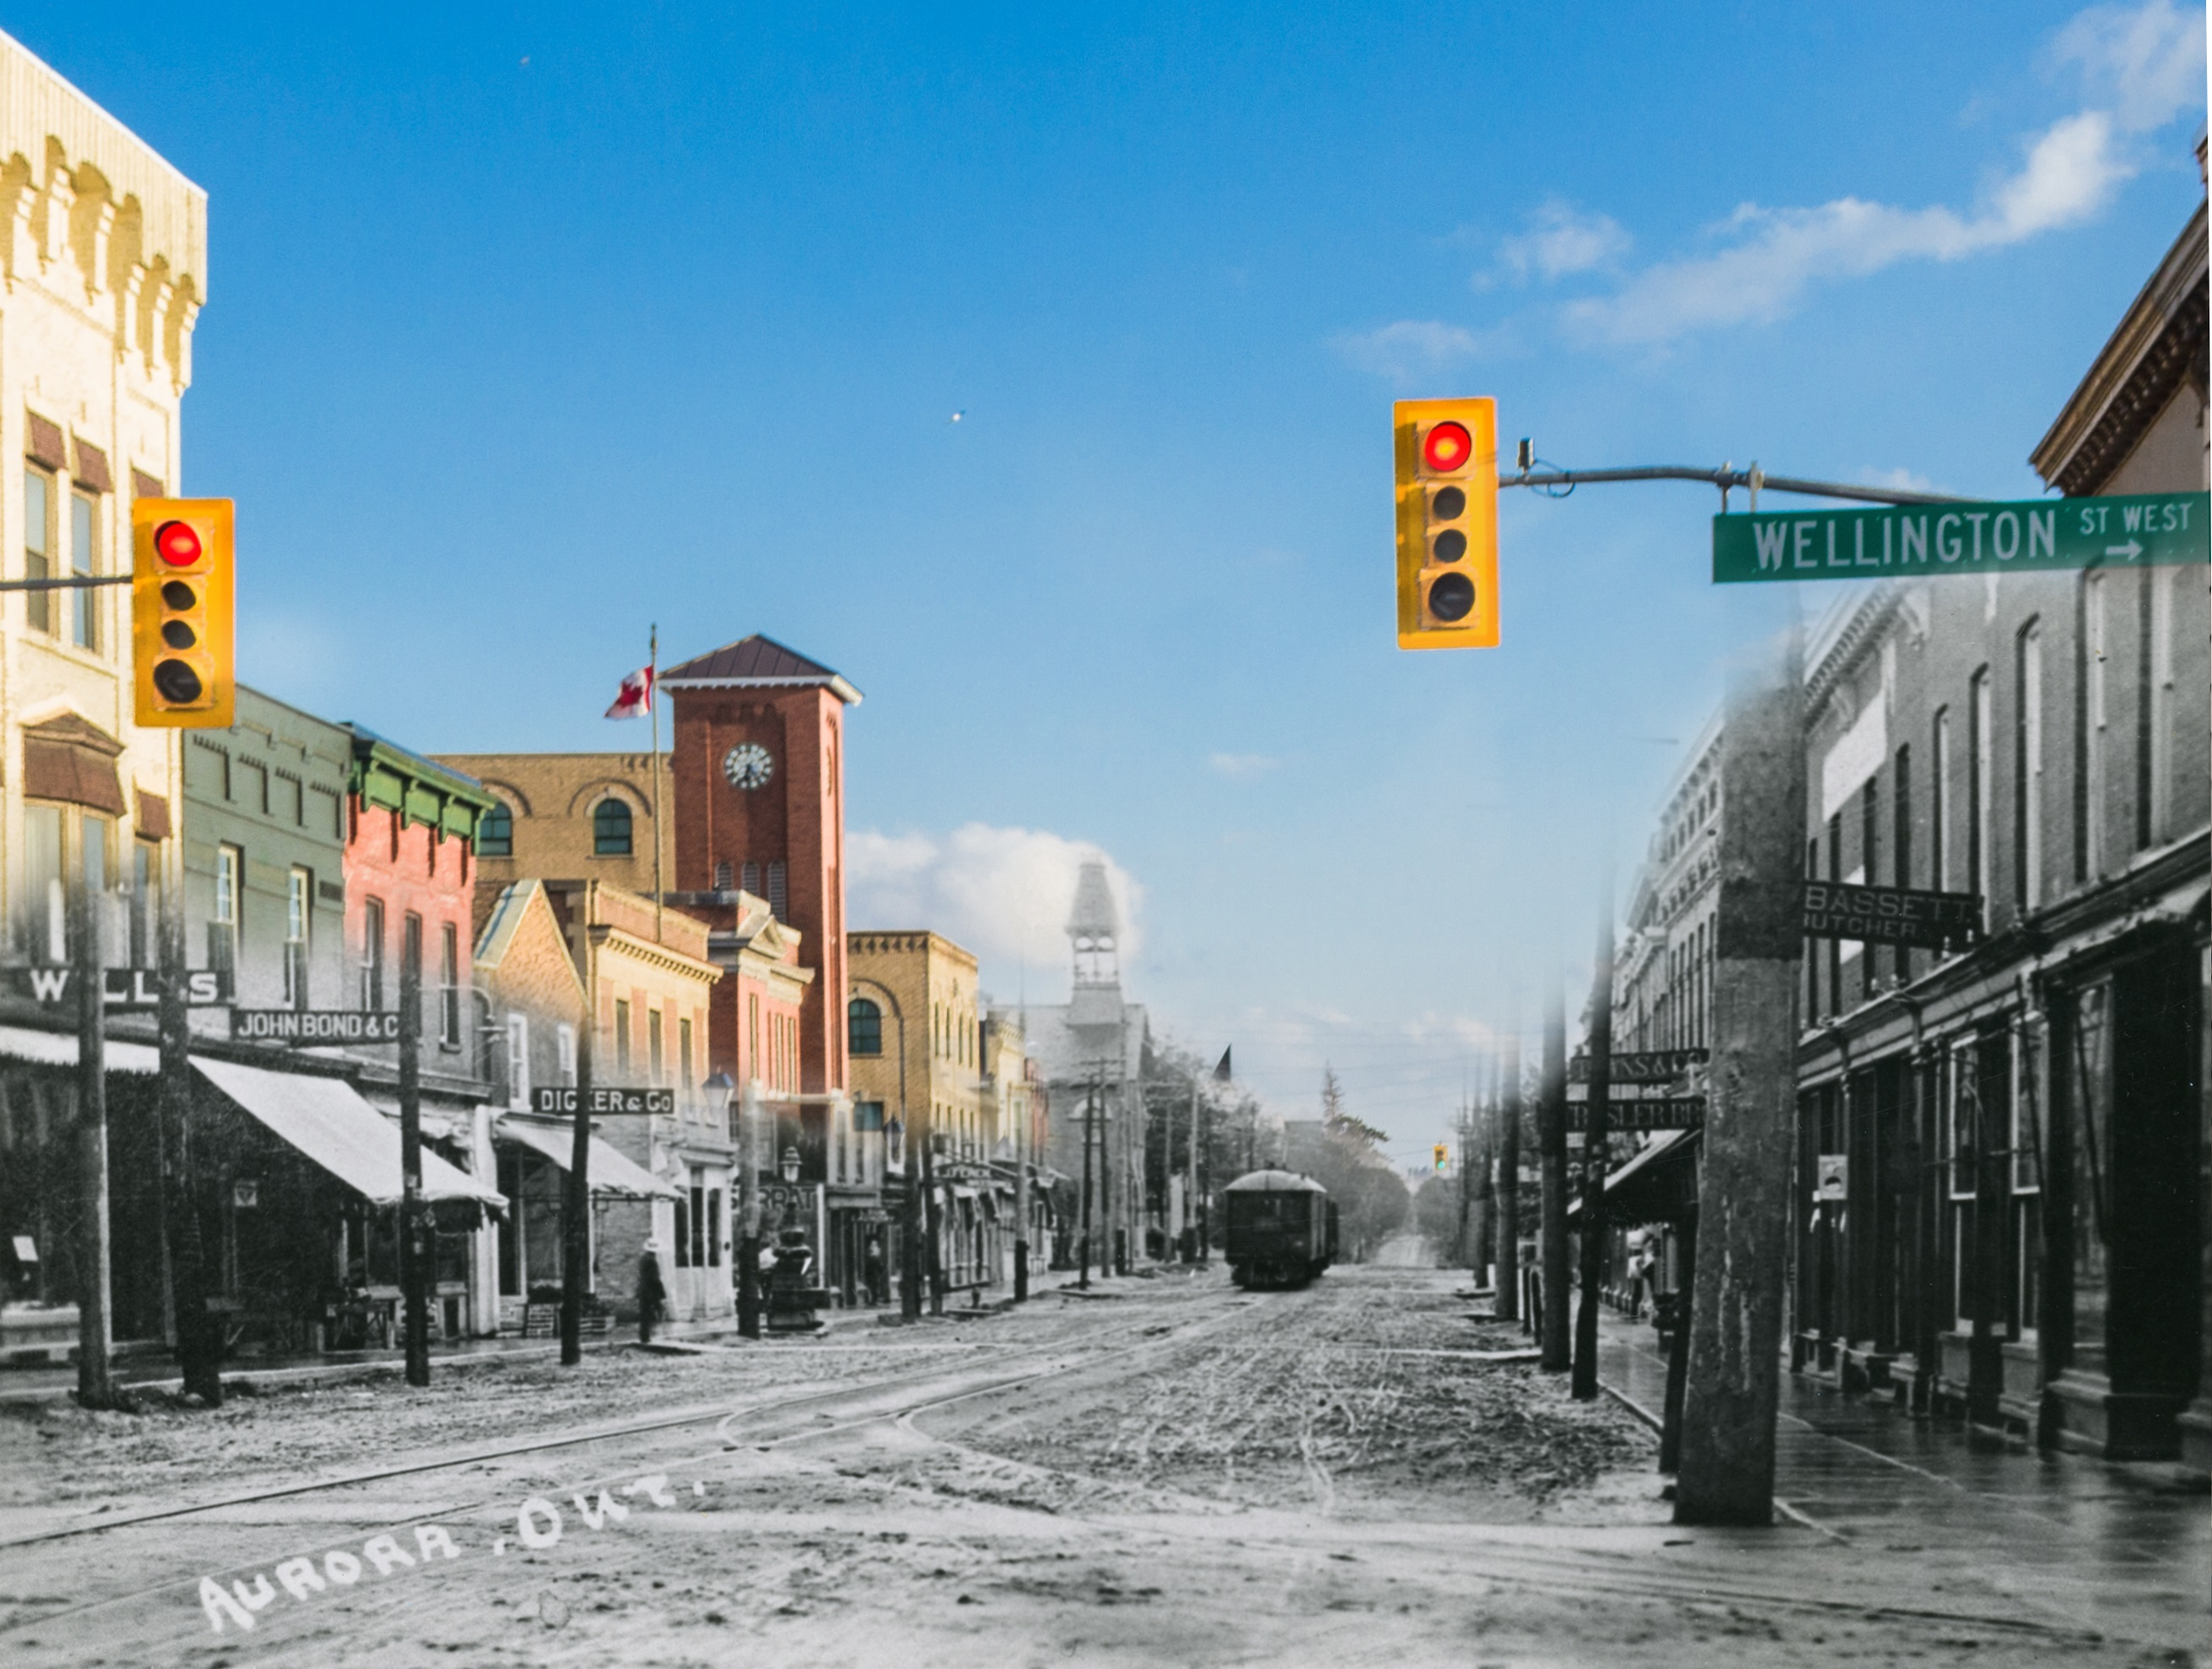 A photograph edited to combine an old and new photo of the same location: a street lined with shops, a streetcar is in the distance, people are on the far side.